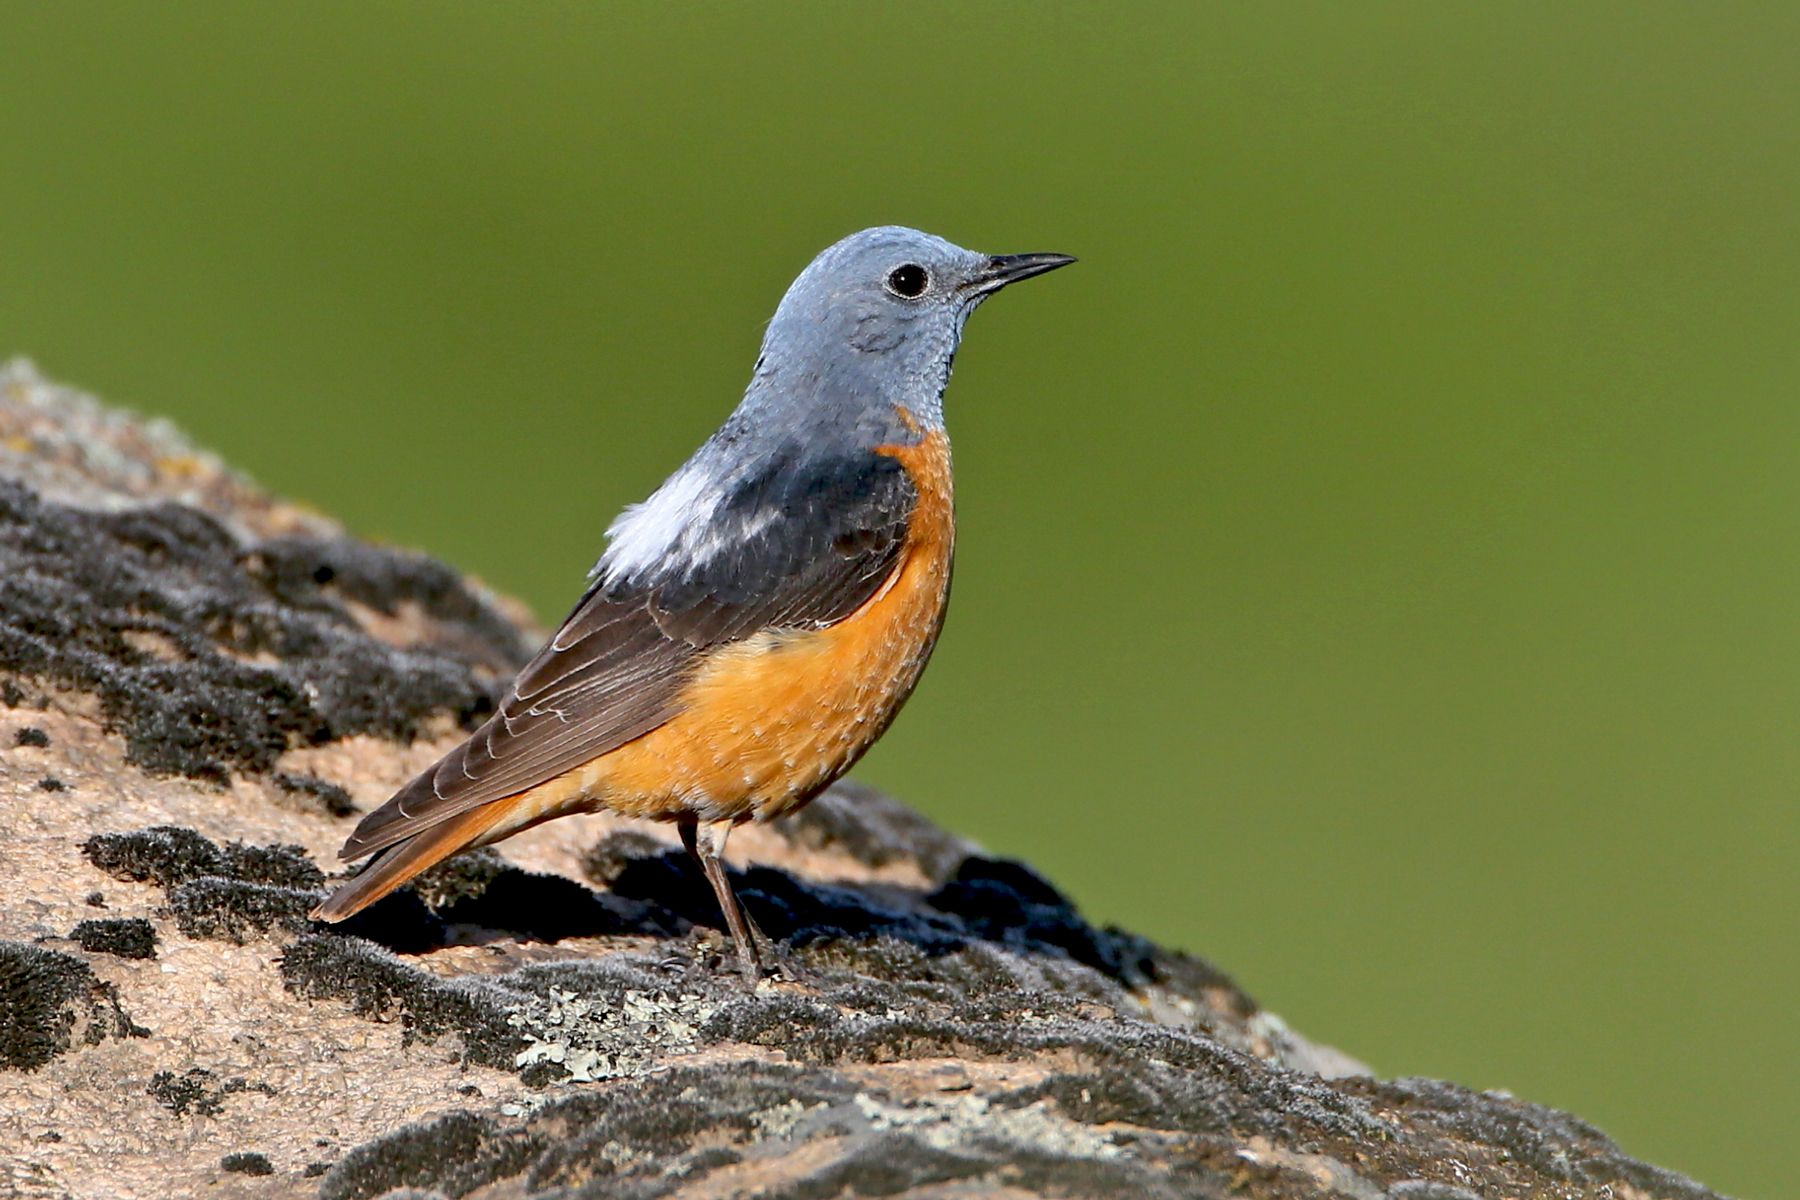 A handsome male Common Rock Thrush